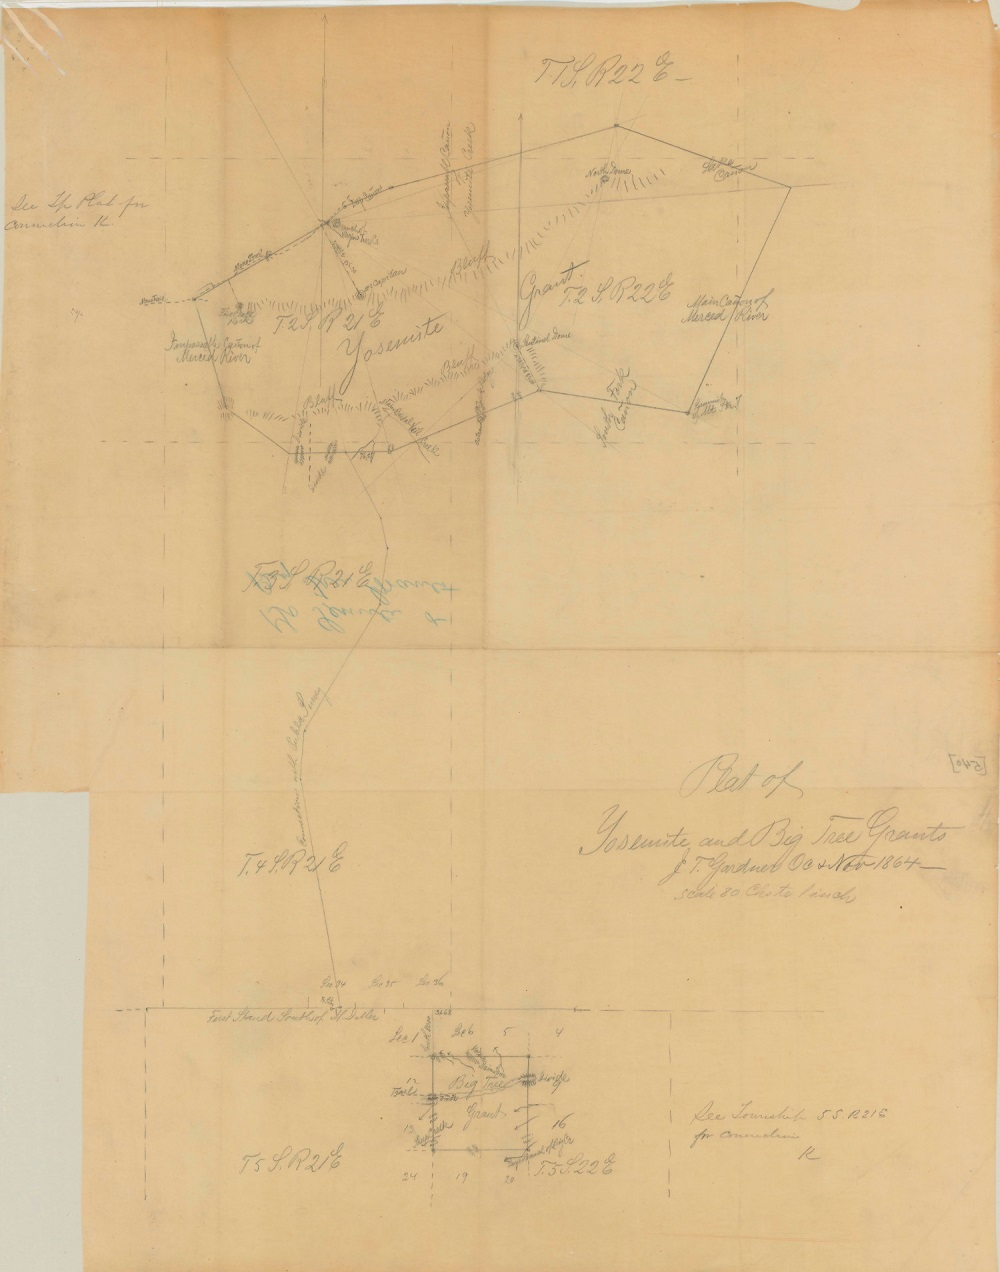 sketch map showing the boundaries of the Yosemite and Big Trees grants, undated